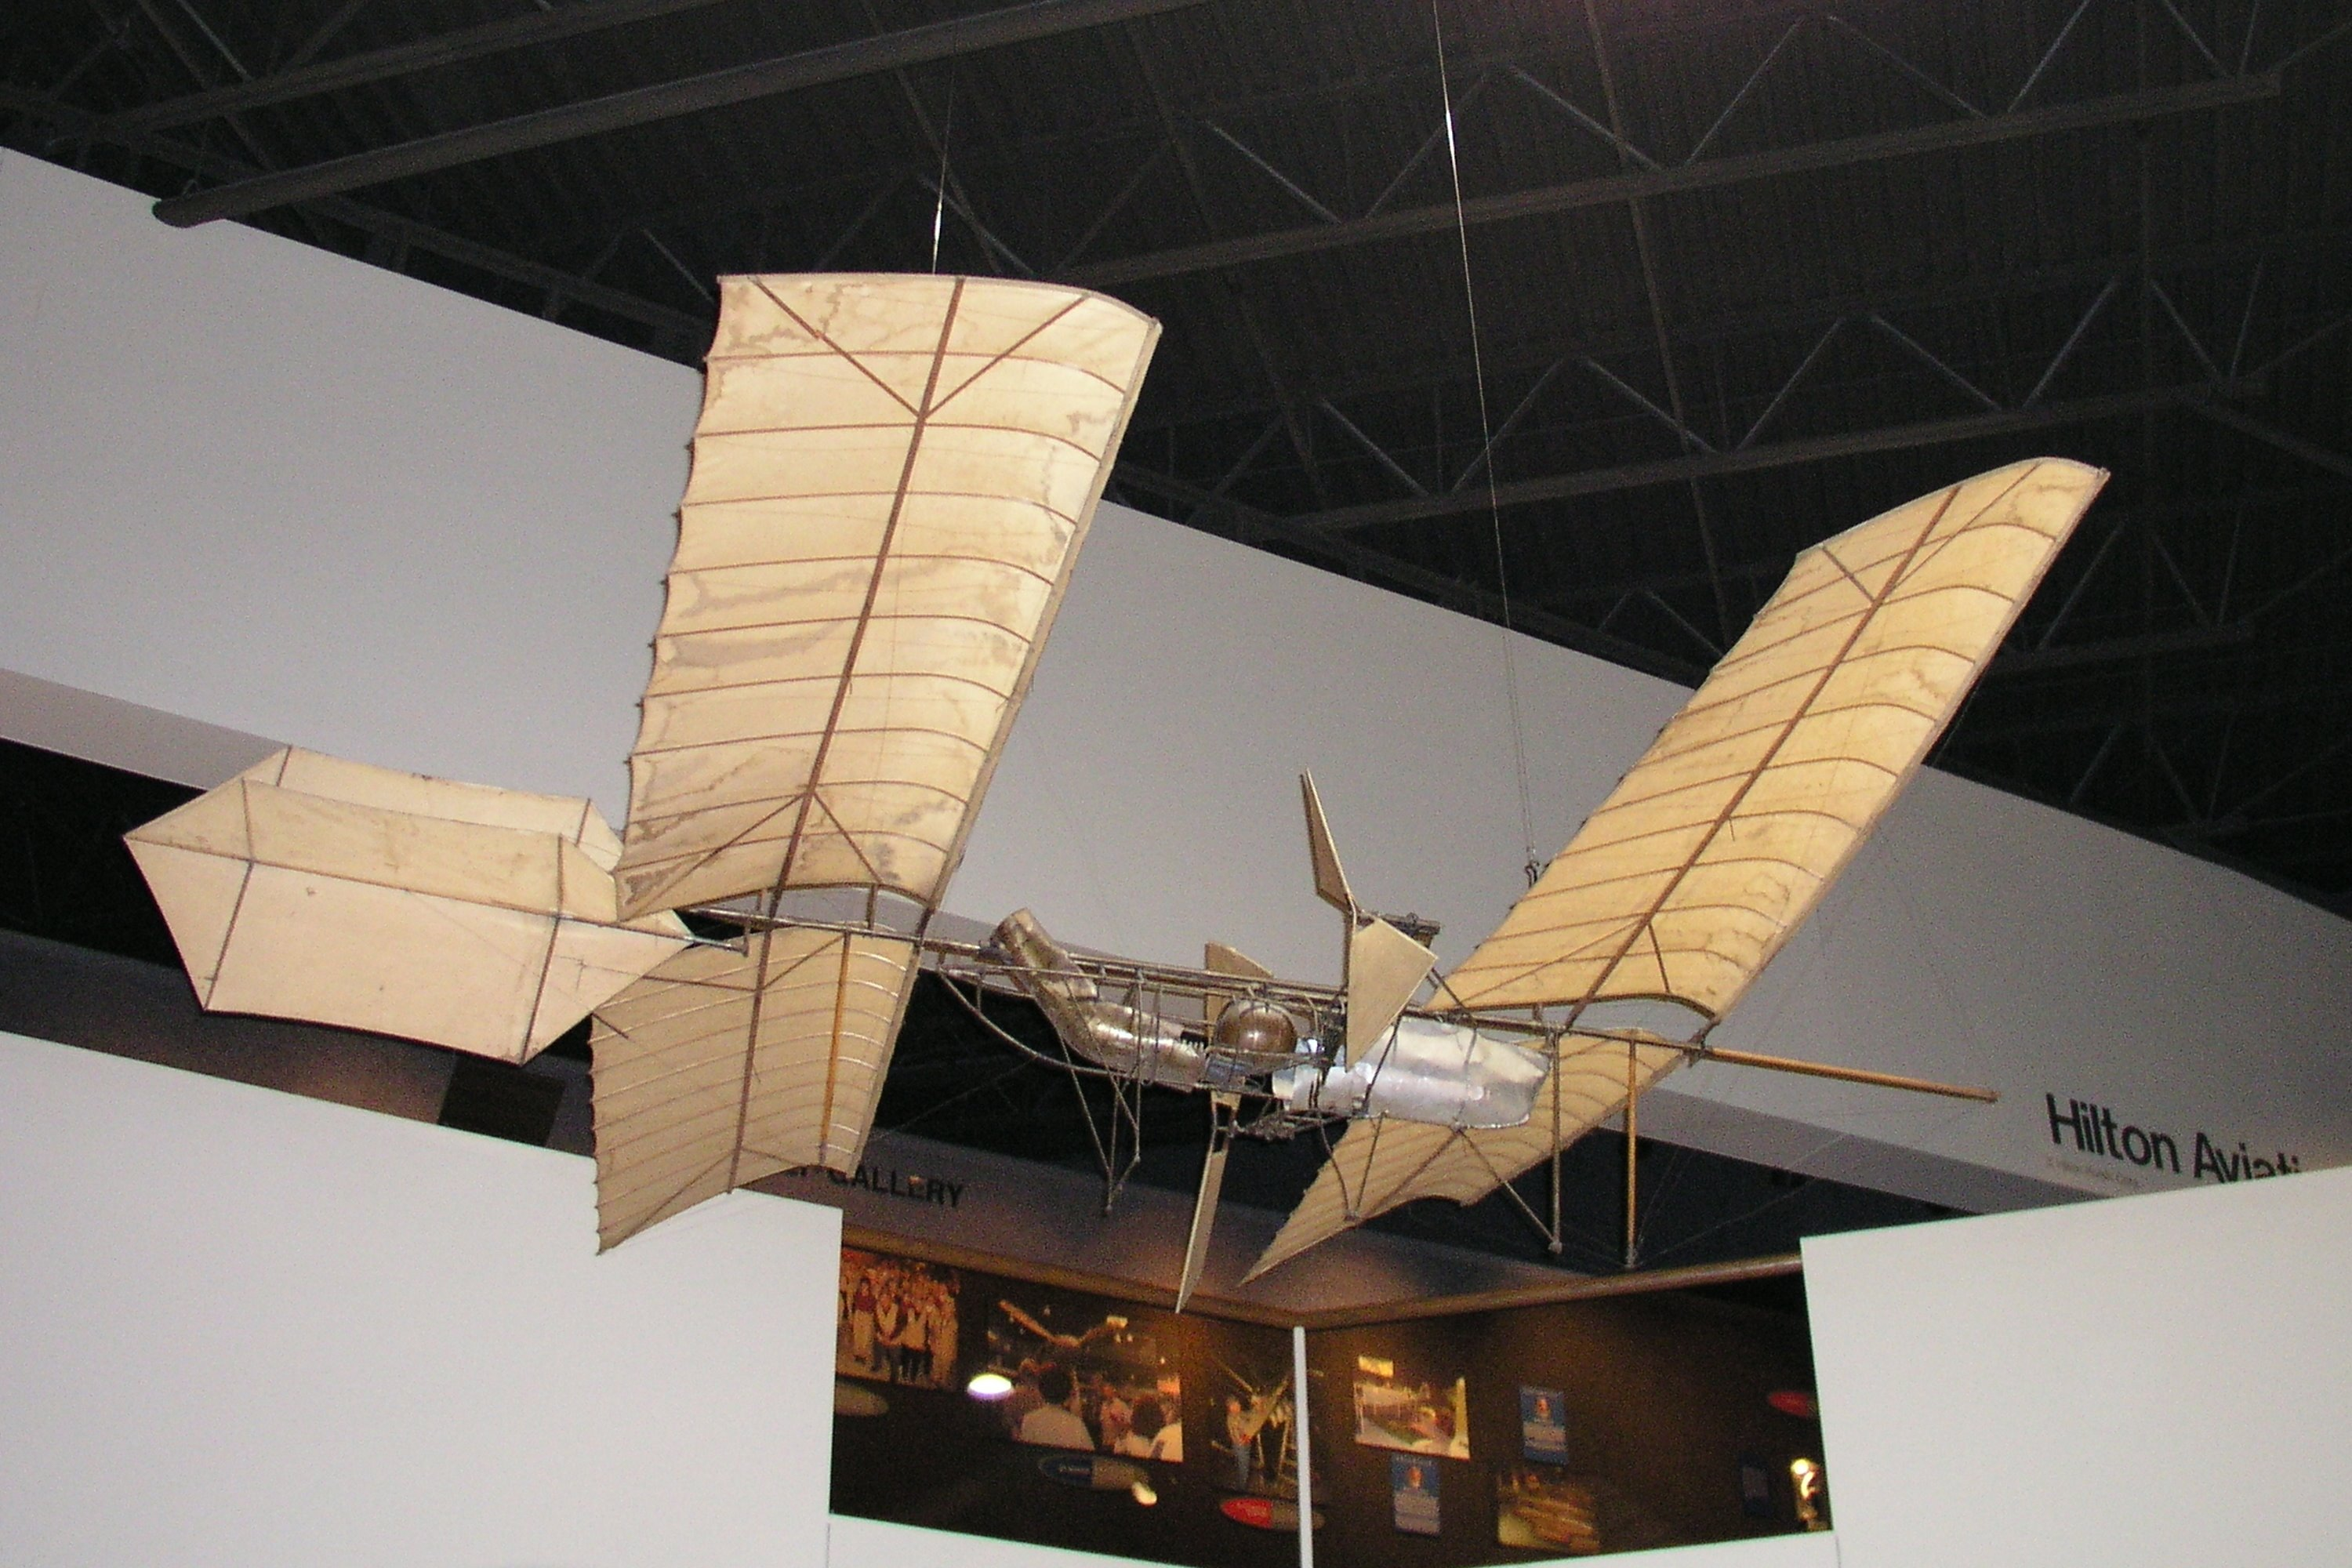 Chronology of Aviation History from 1890 to 1899